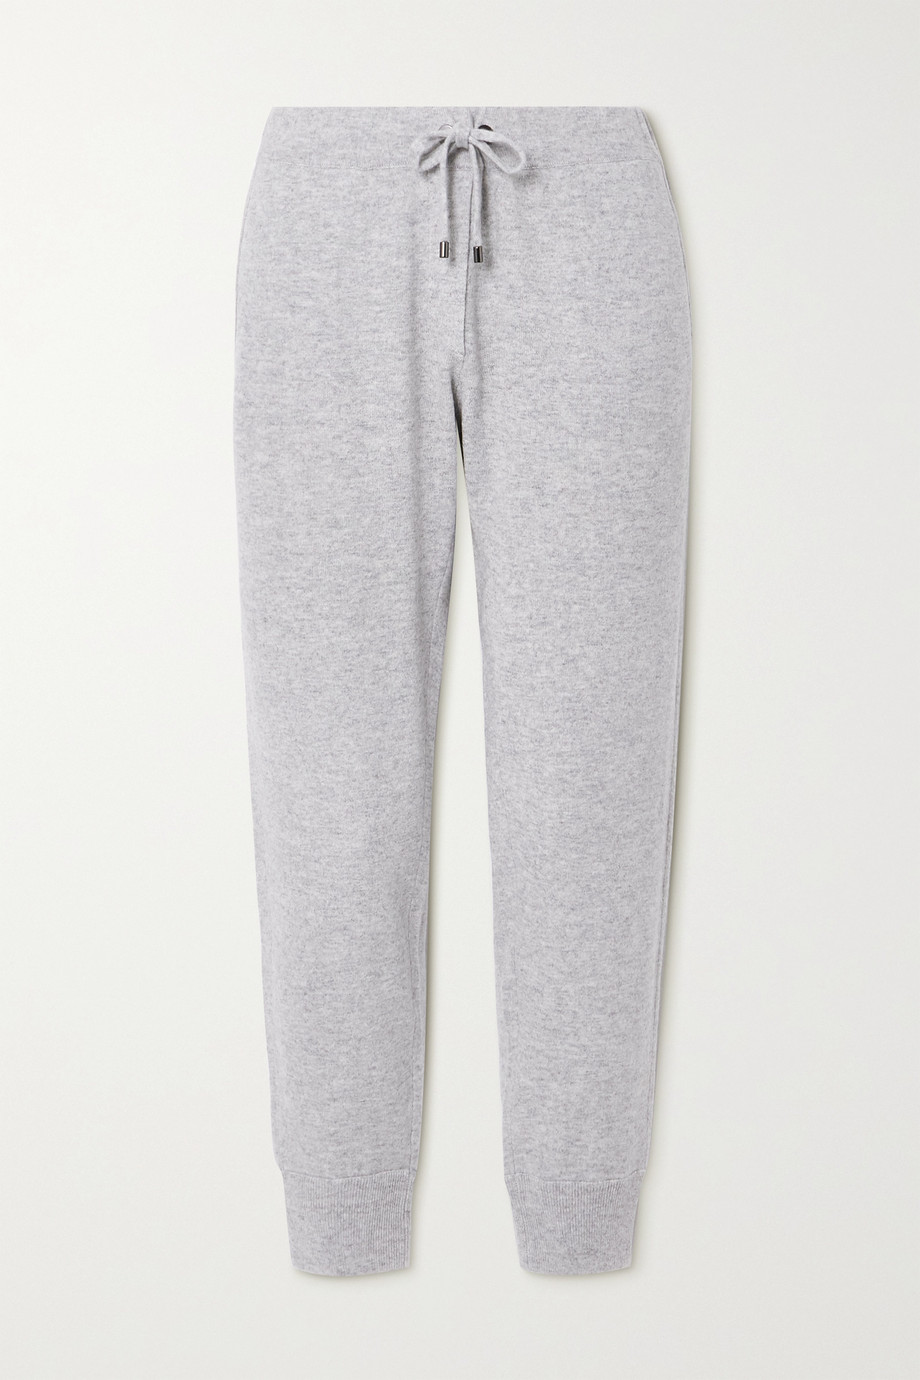 Brunello Cucinelli Tapered bead-embellished cashmere track pants